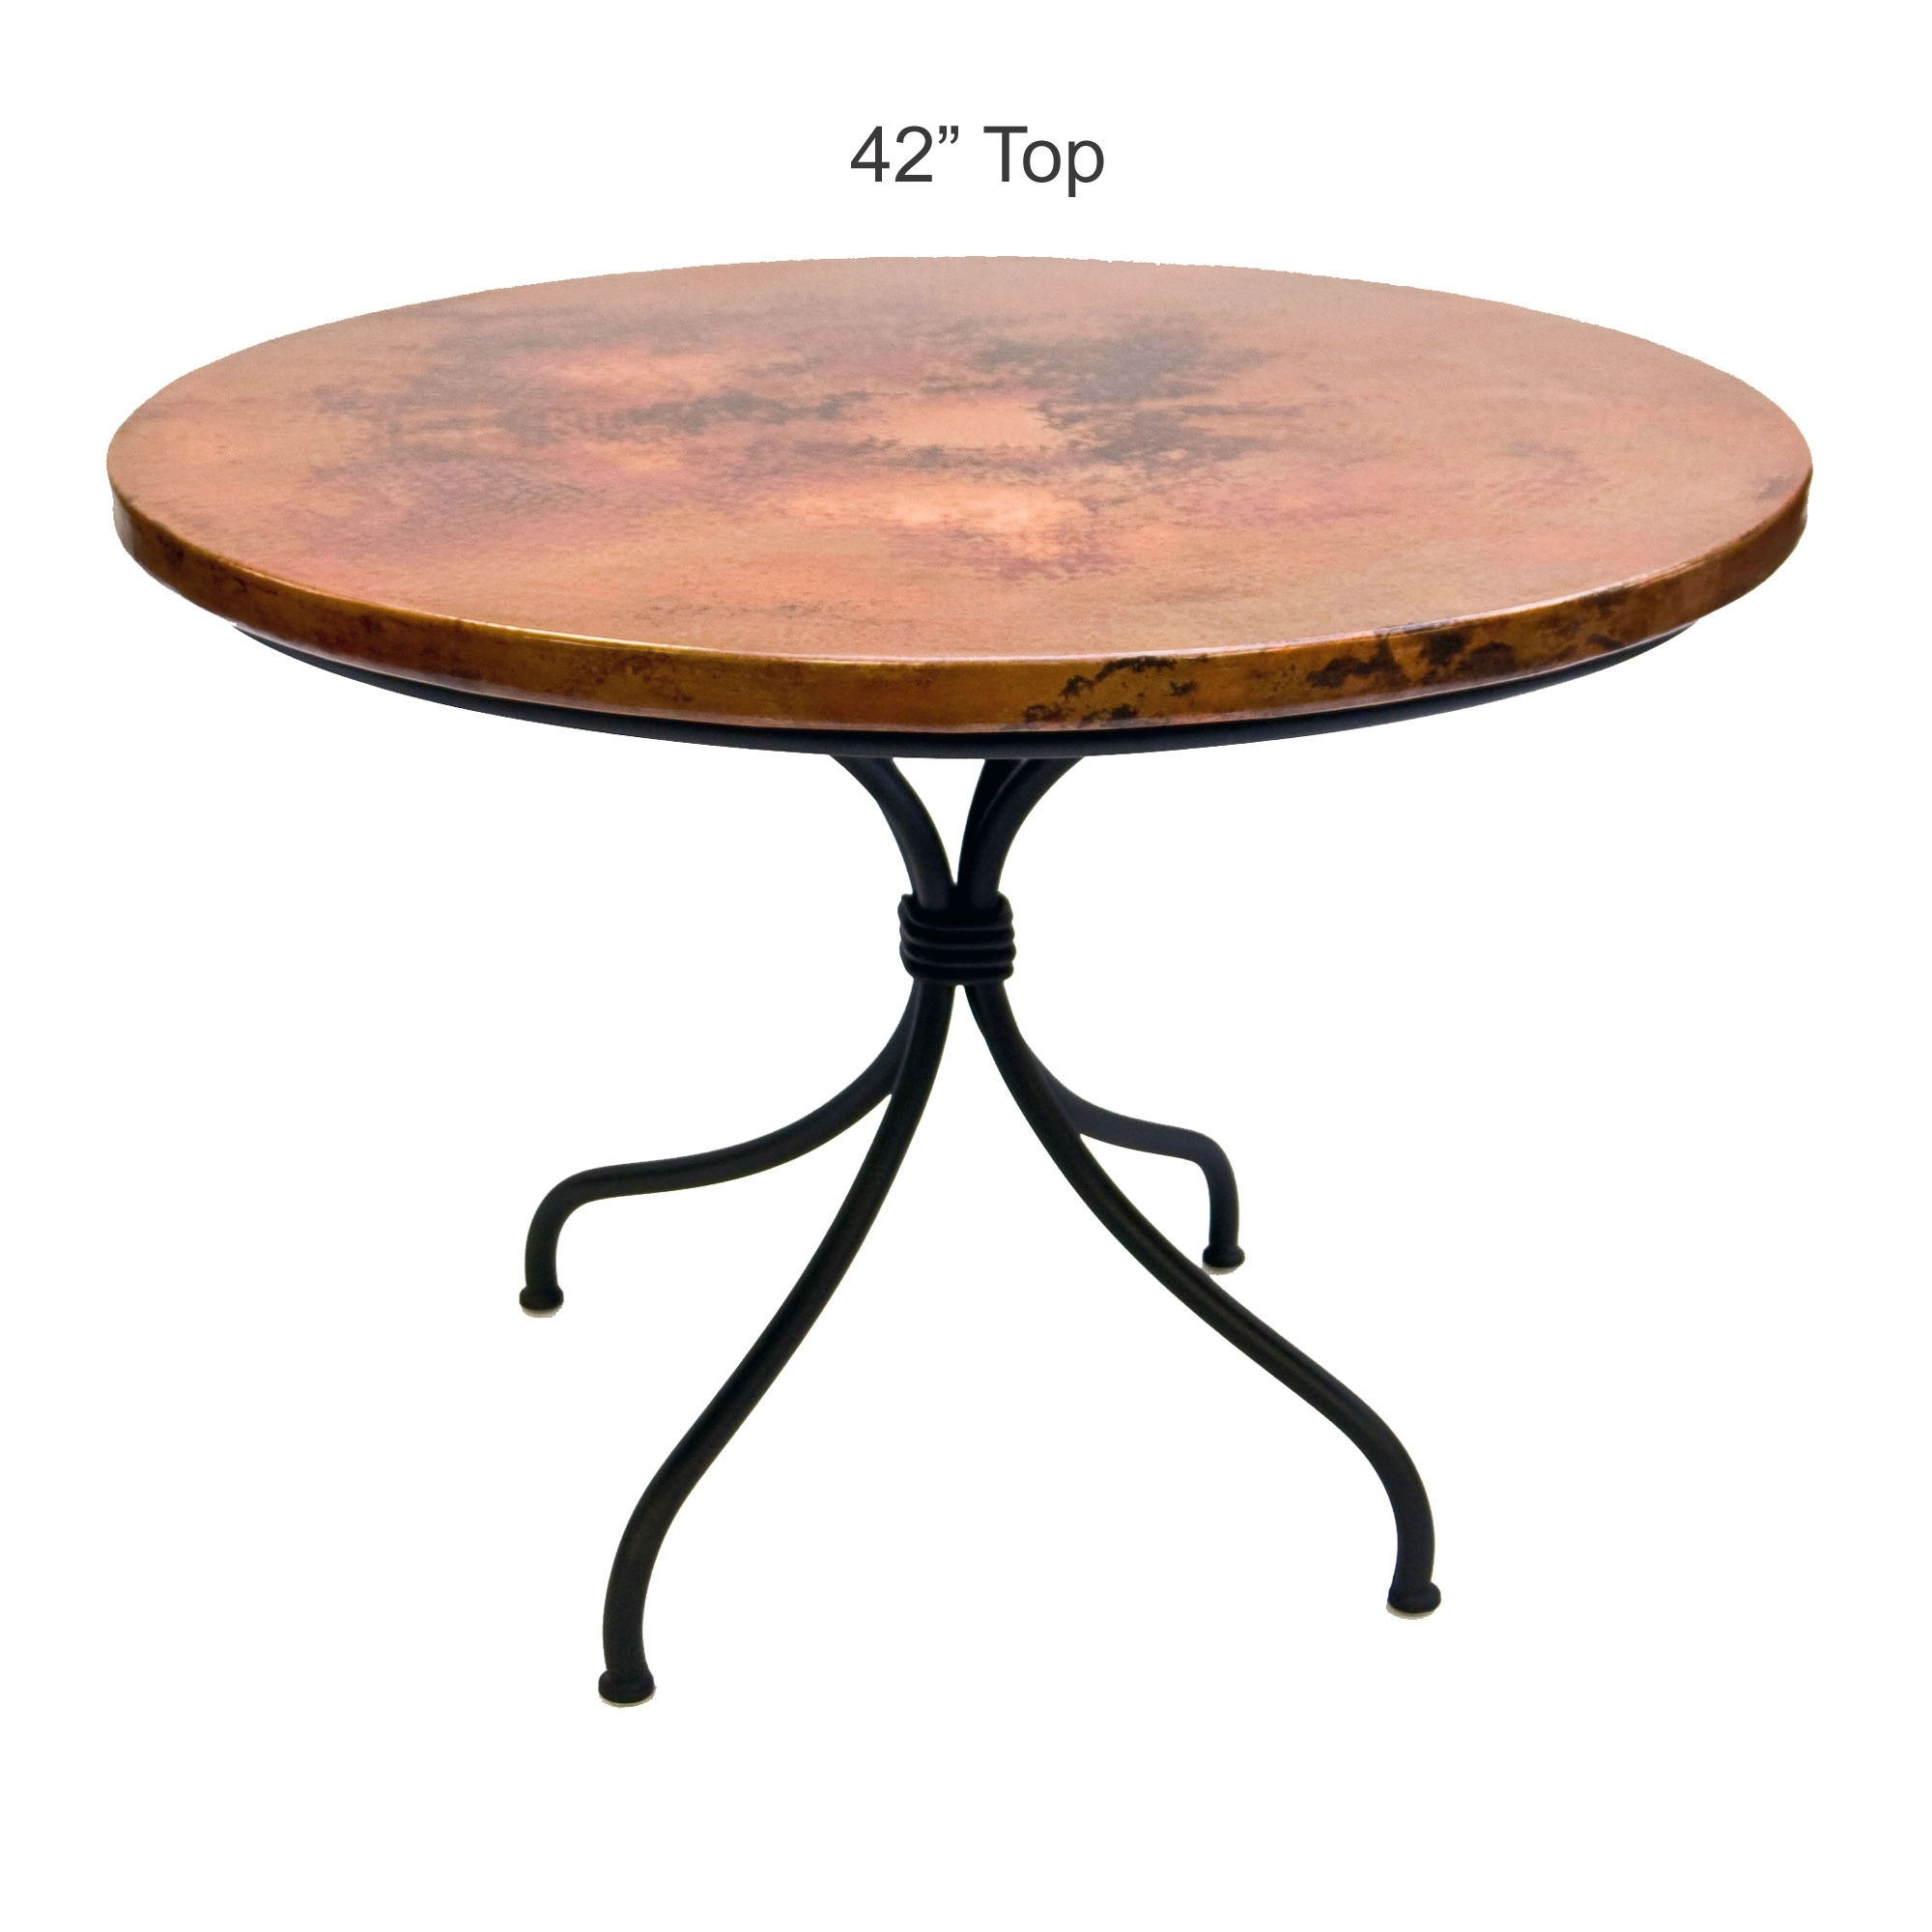 Wrought Iron Dining Table Base Pictures To Pin On Pinterest